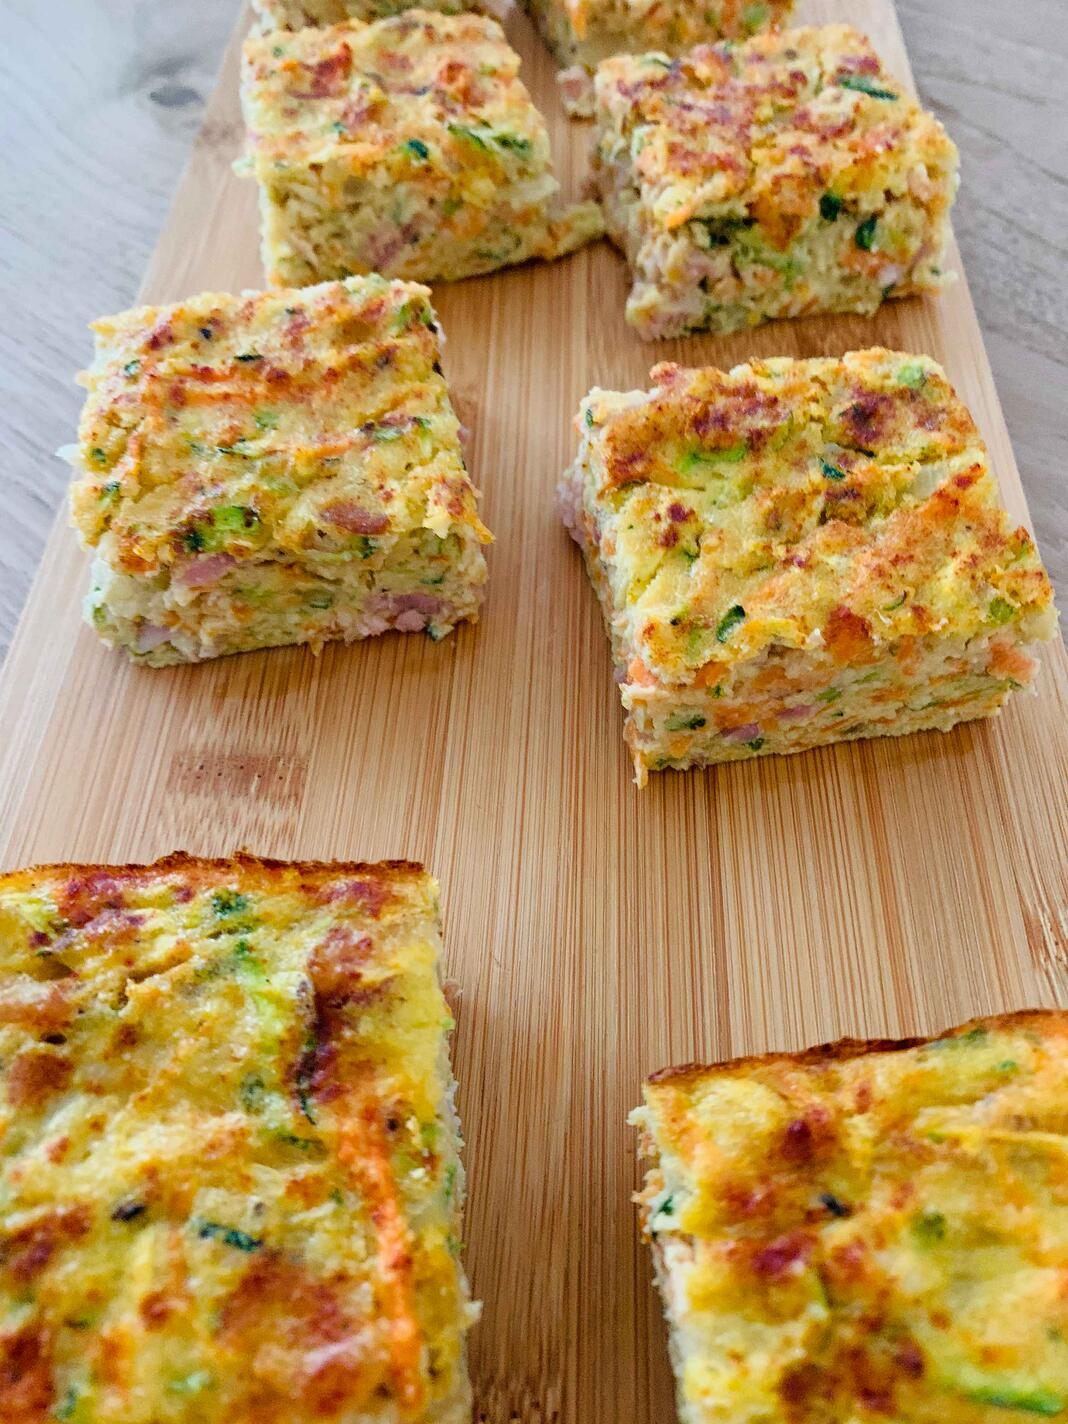 Zucchini-and-Carrot-Sice